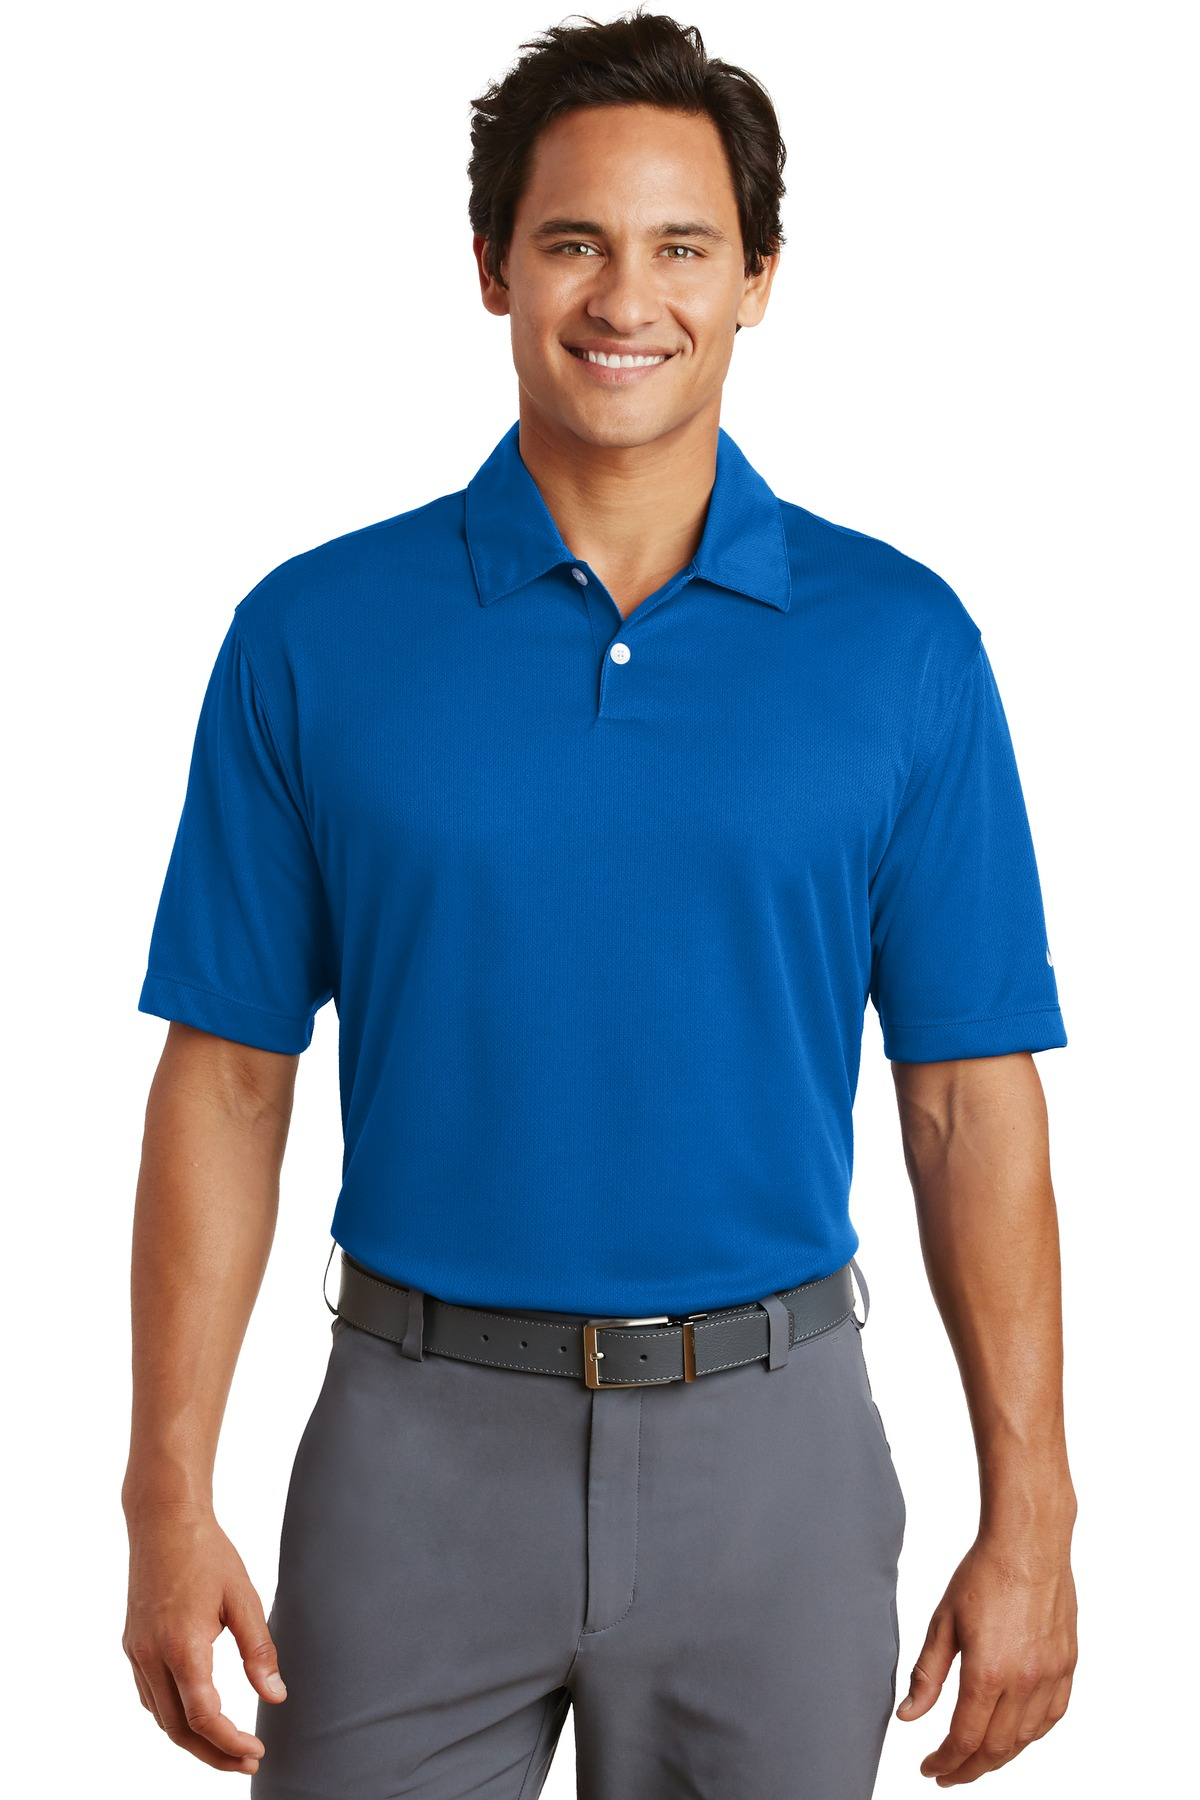 Nike Dri-FIT Pebble Texture Polo. 373749 - Photo Blue